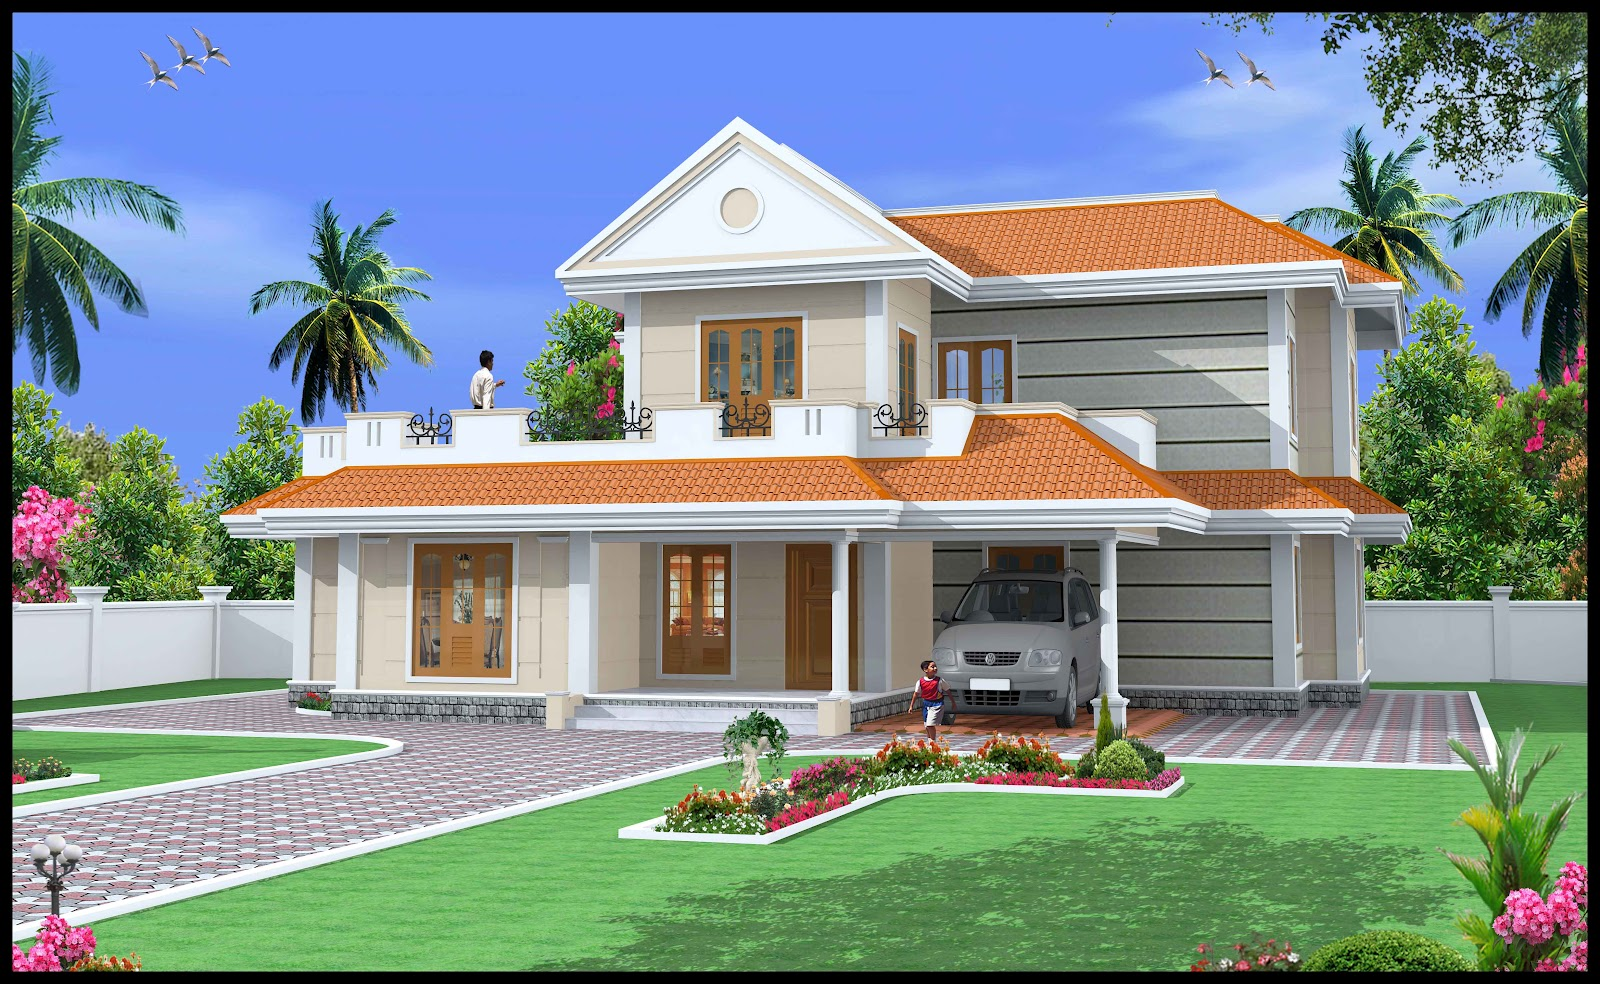 Simple duplex house design indian duplex house designs for Simple house plans india